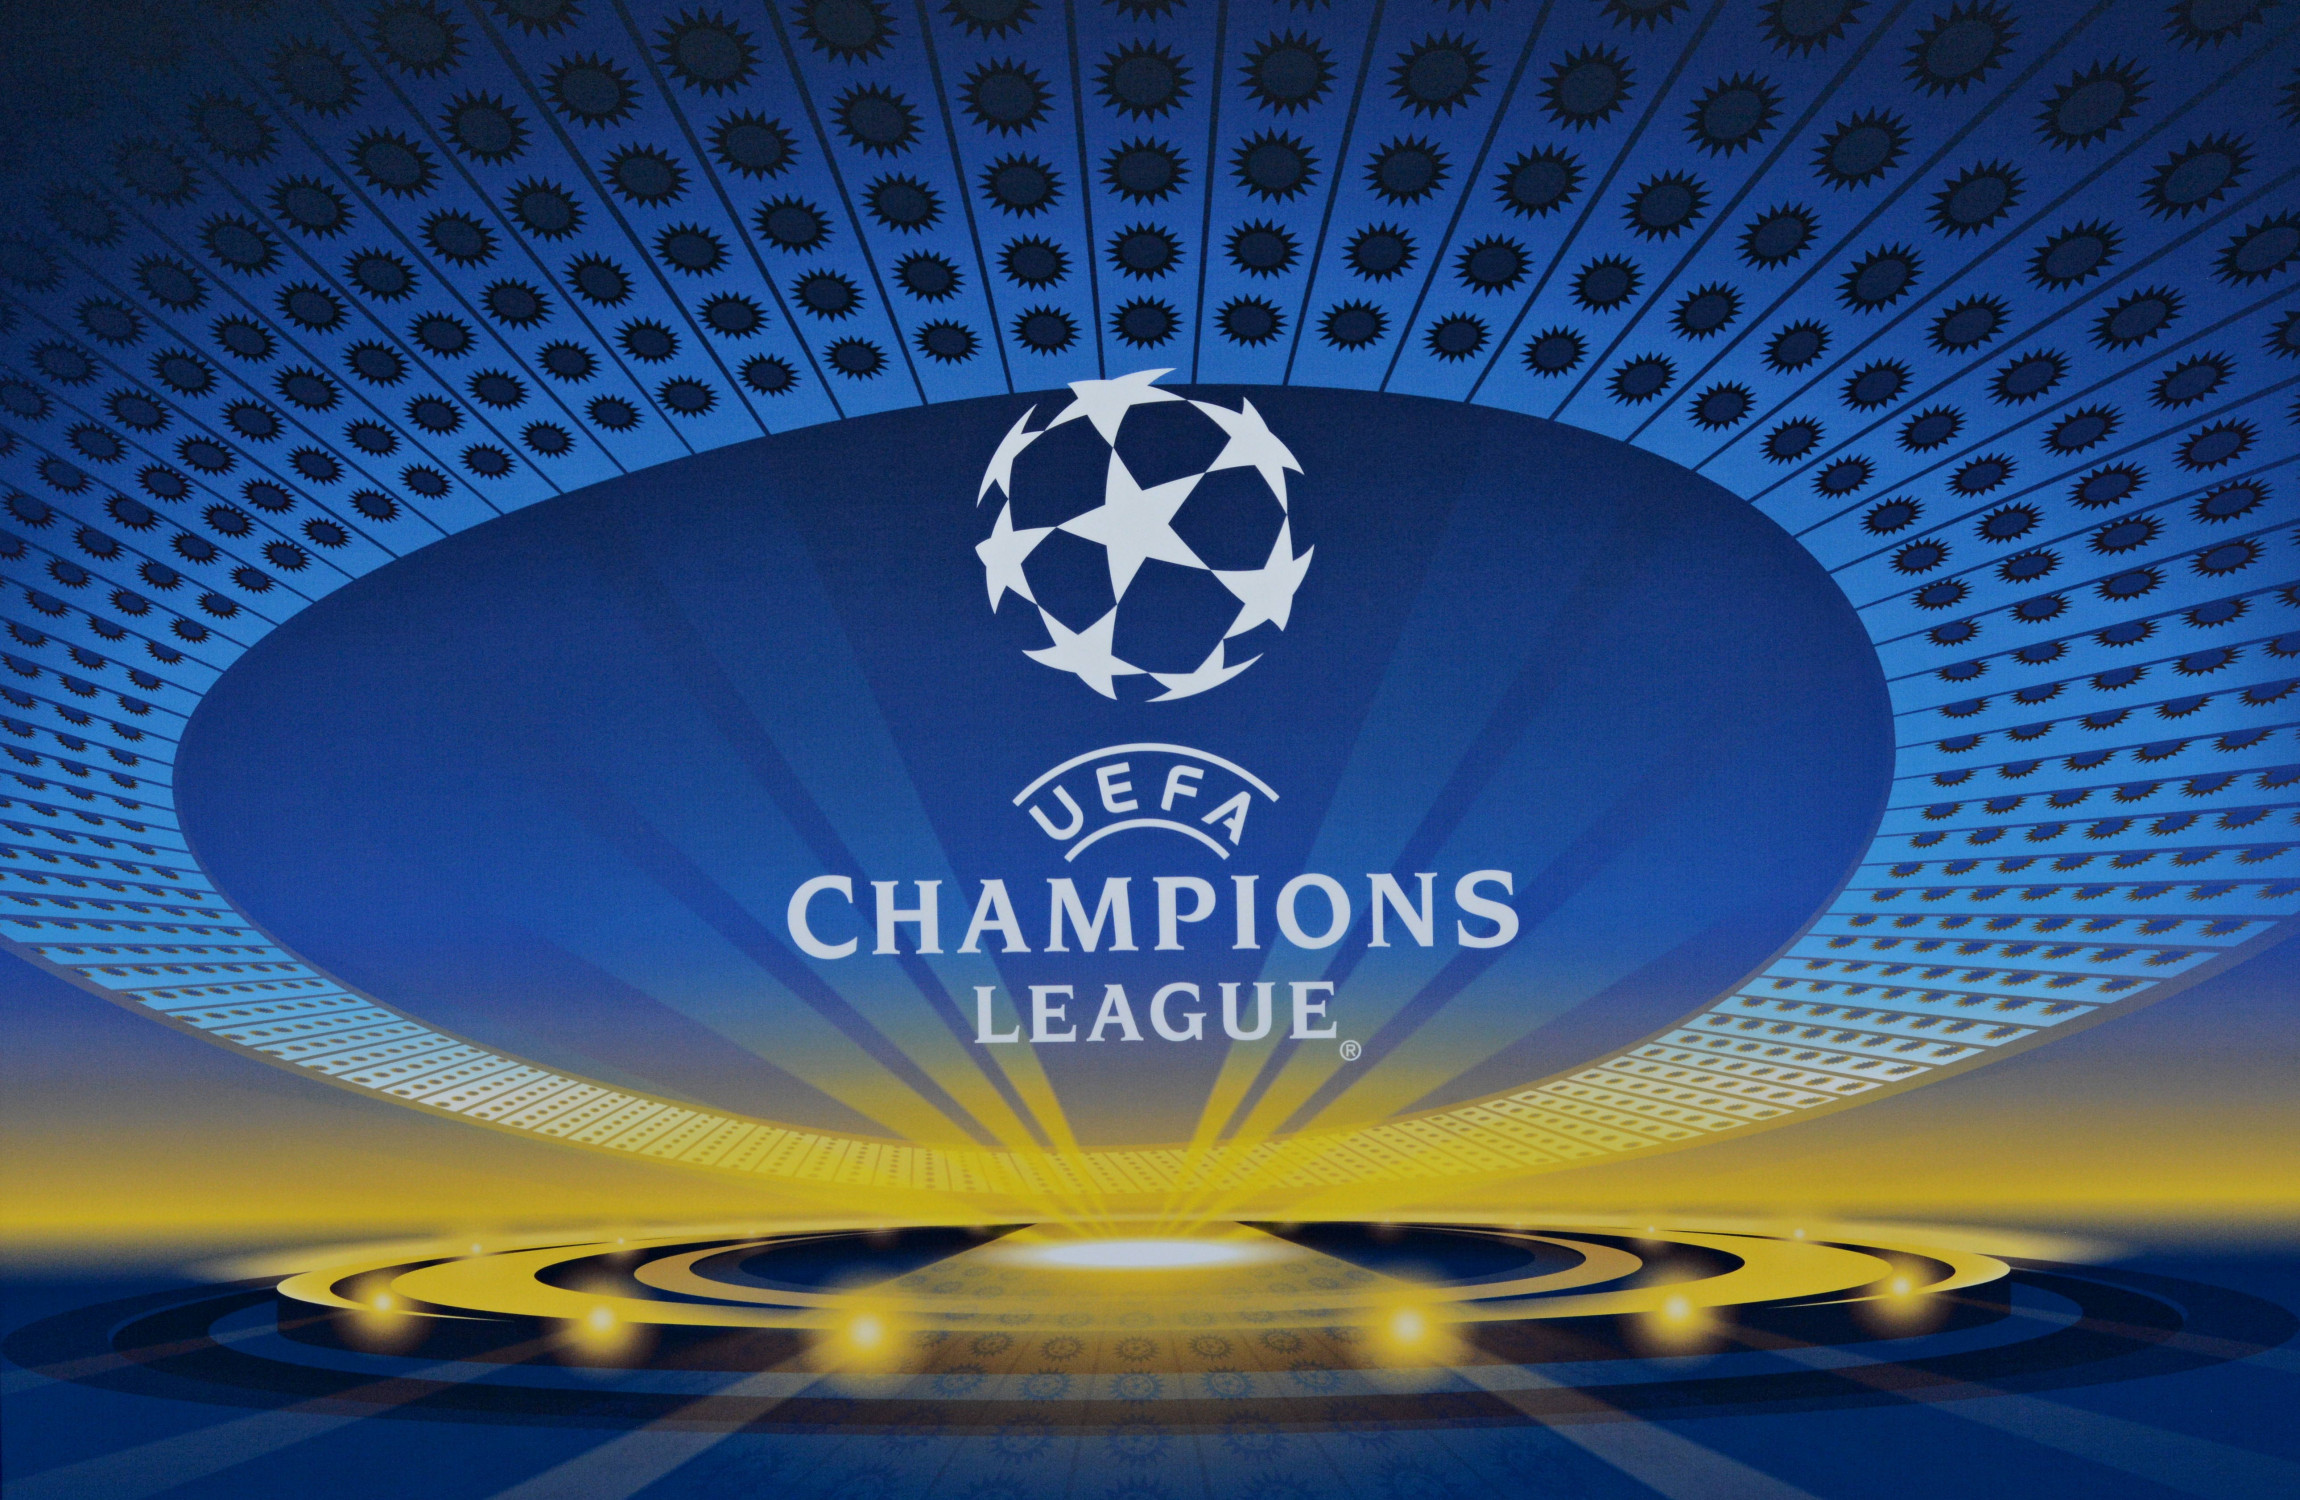 Champions League, Europa League finals available free in UK